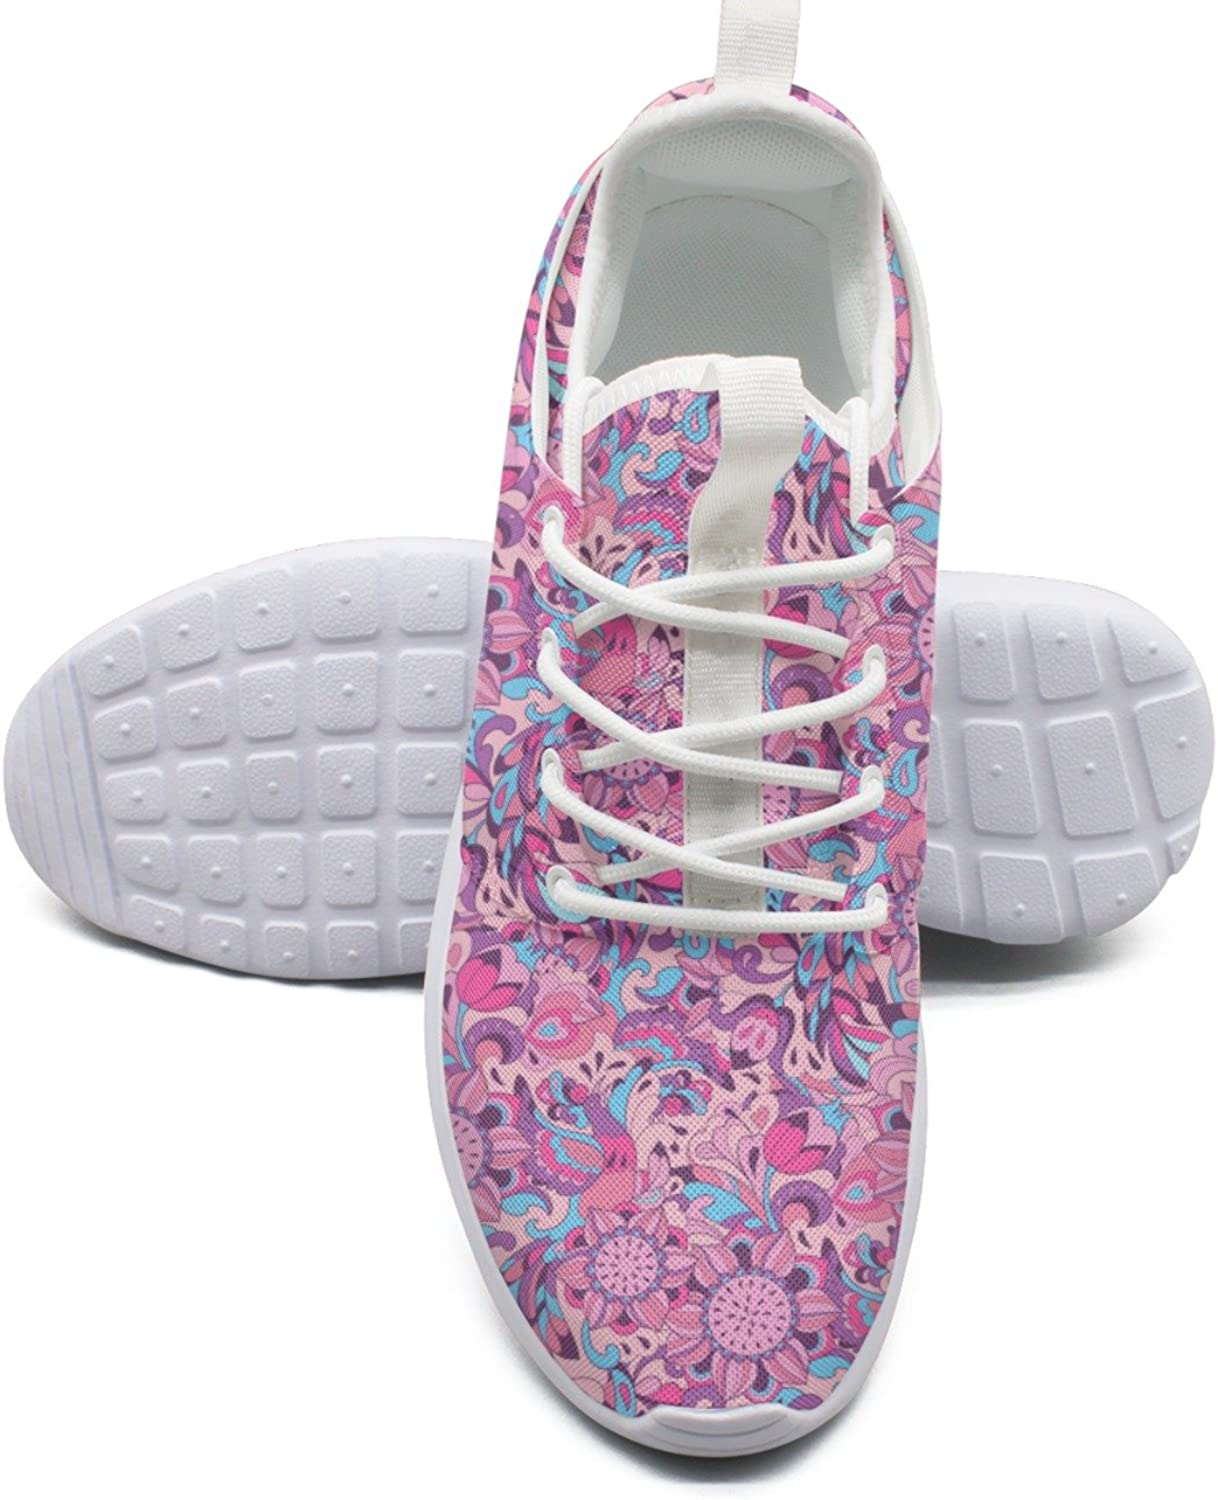 ERSER Red Sunflowers Delivery Running shoes Wide Women